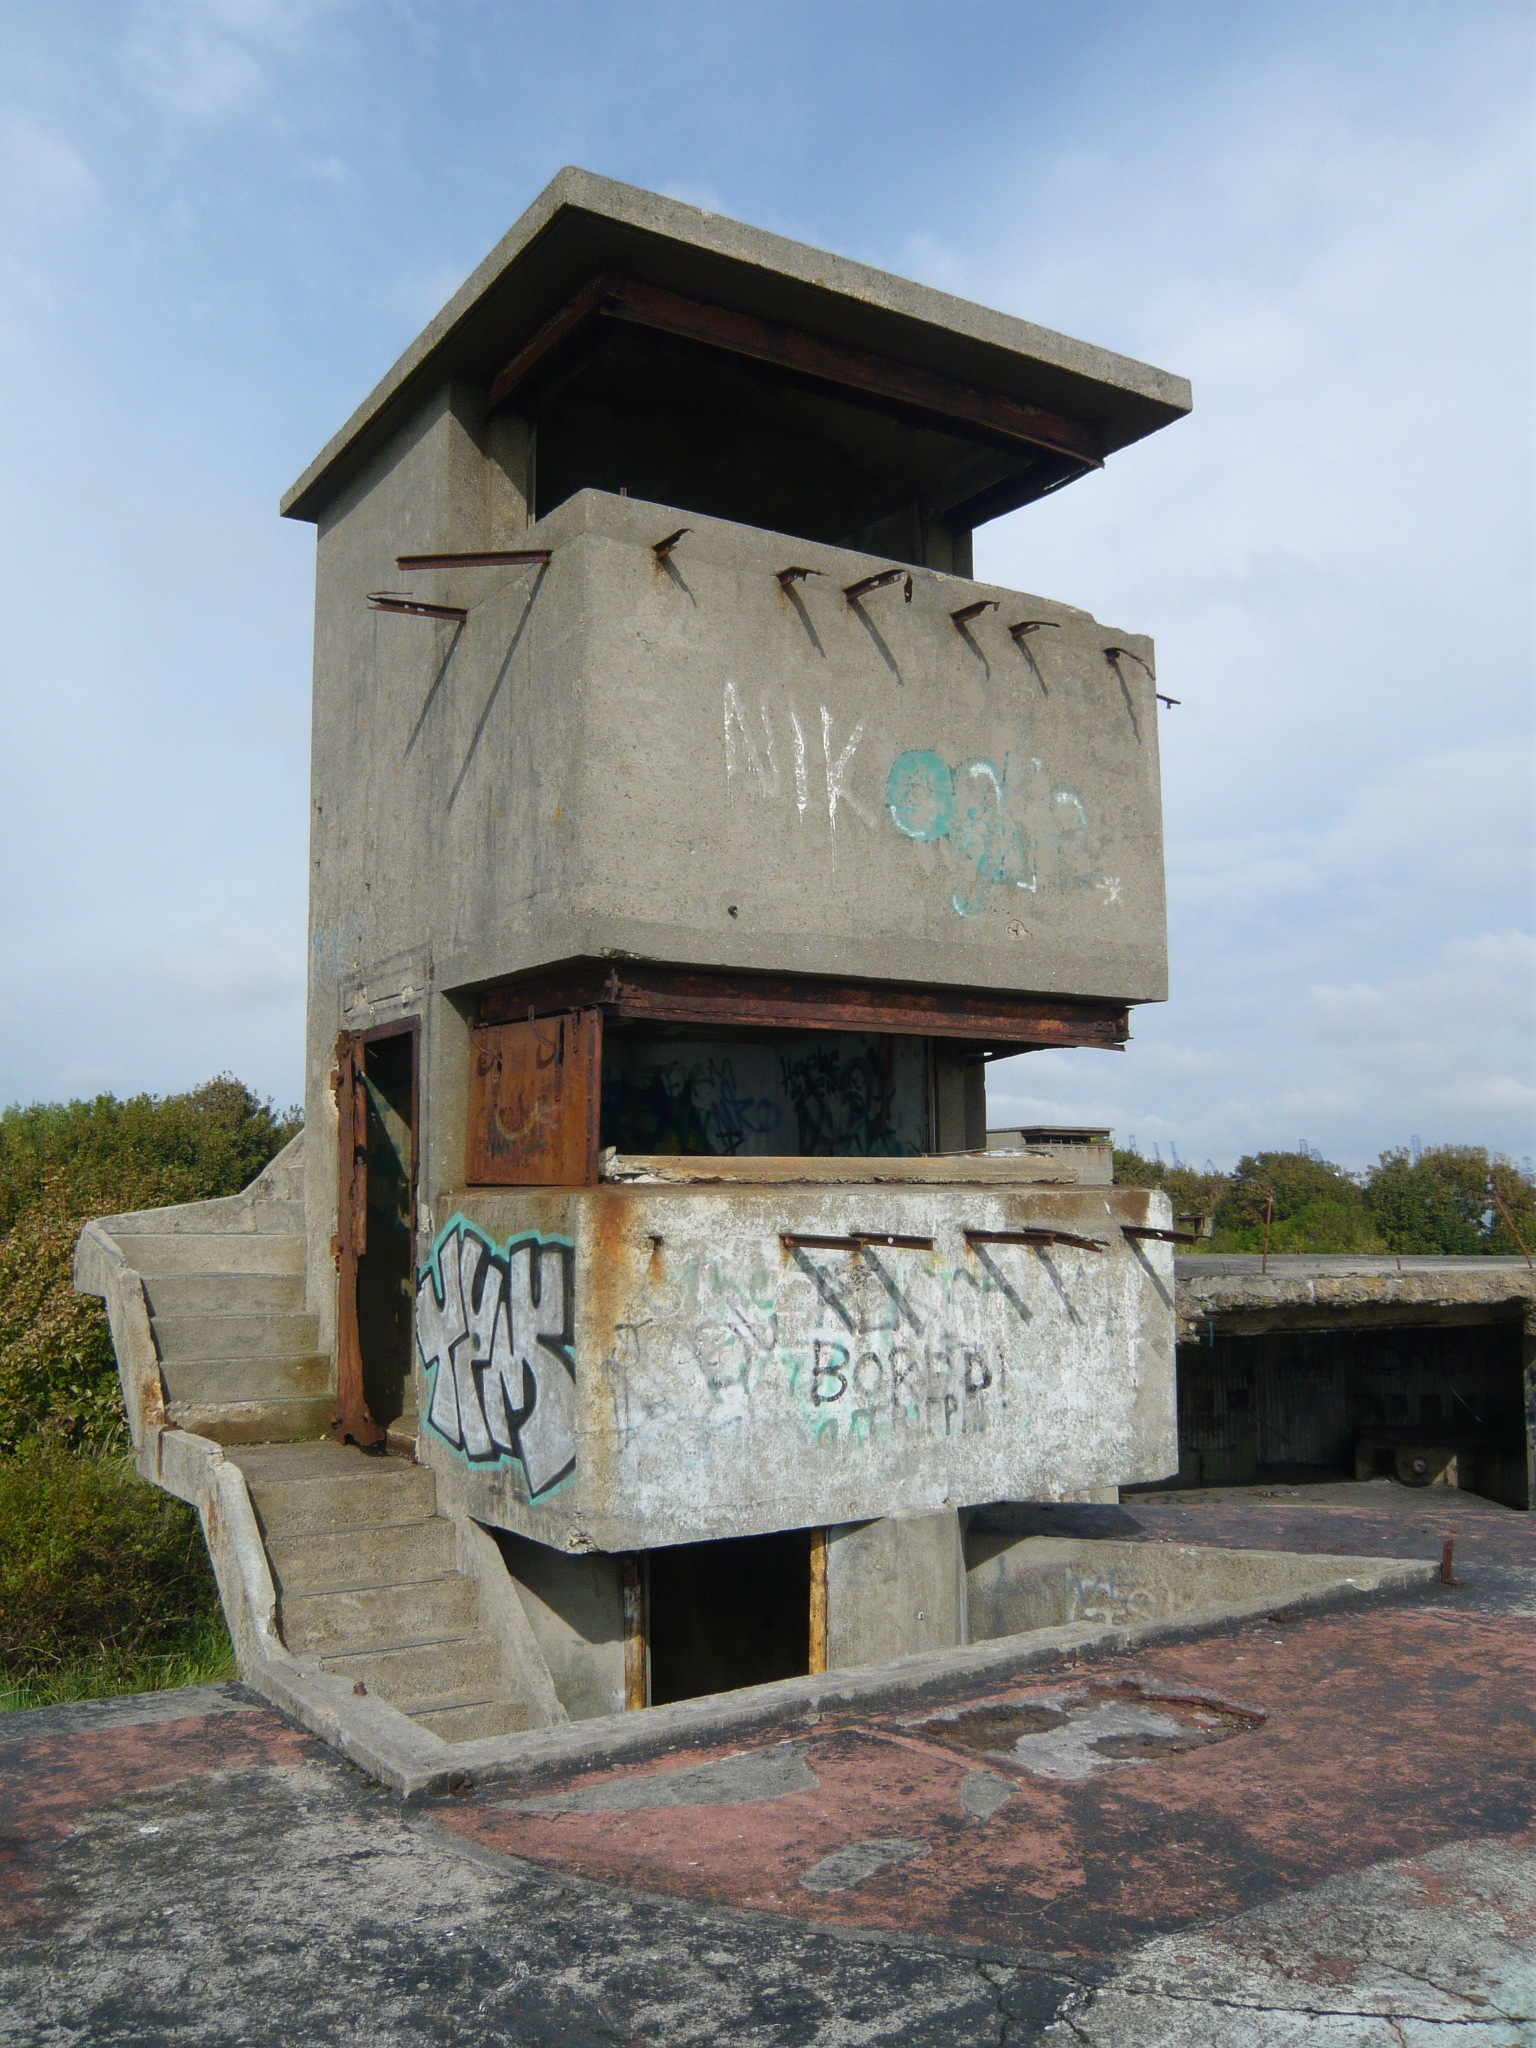 Observation Post by Bob Durrant.64